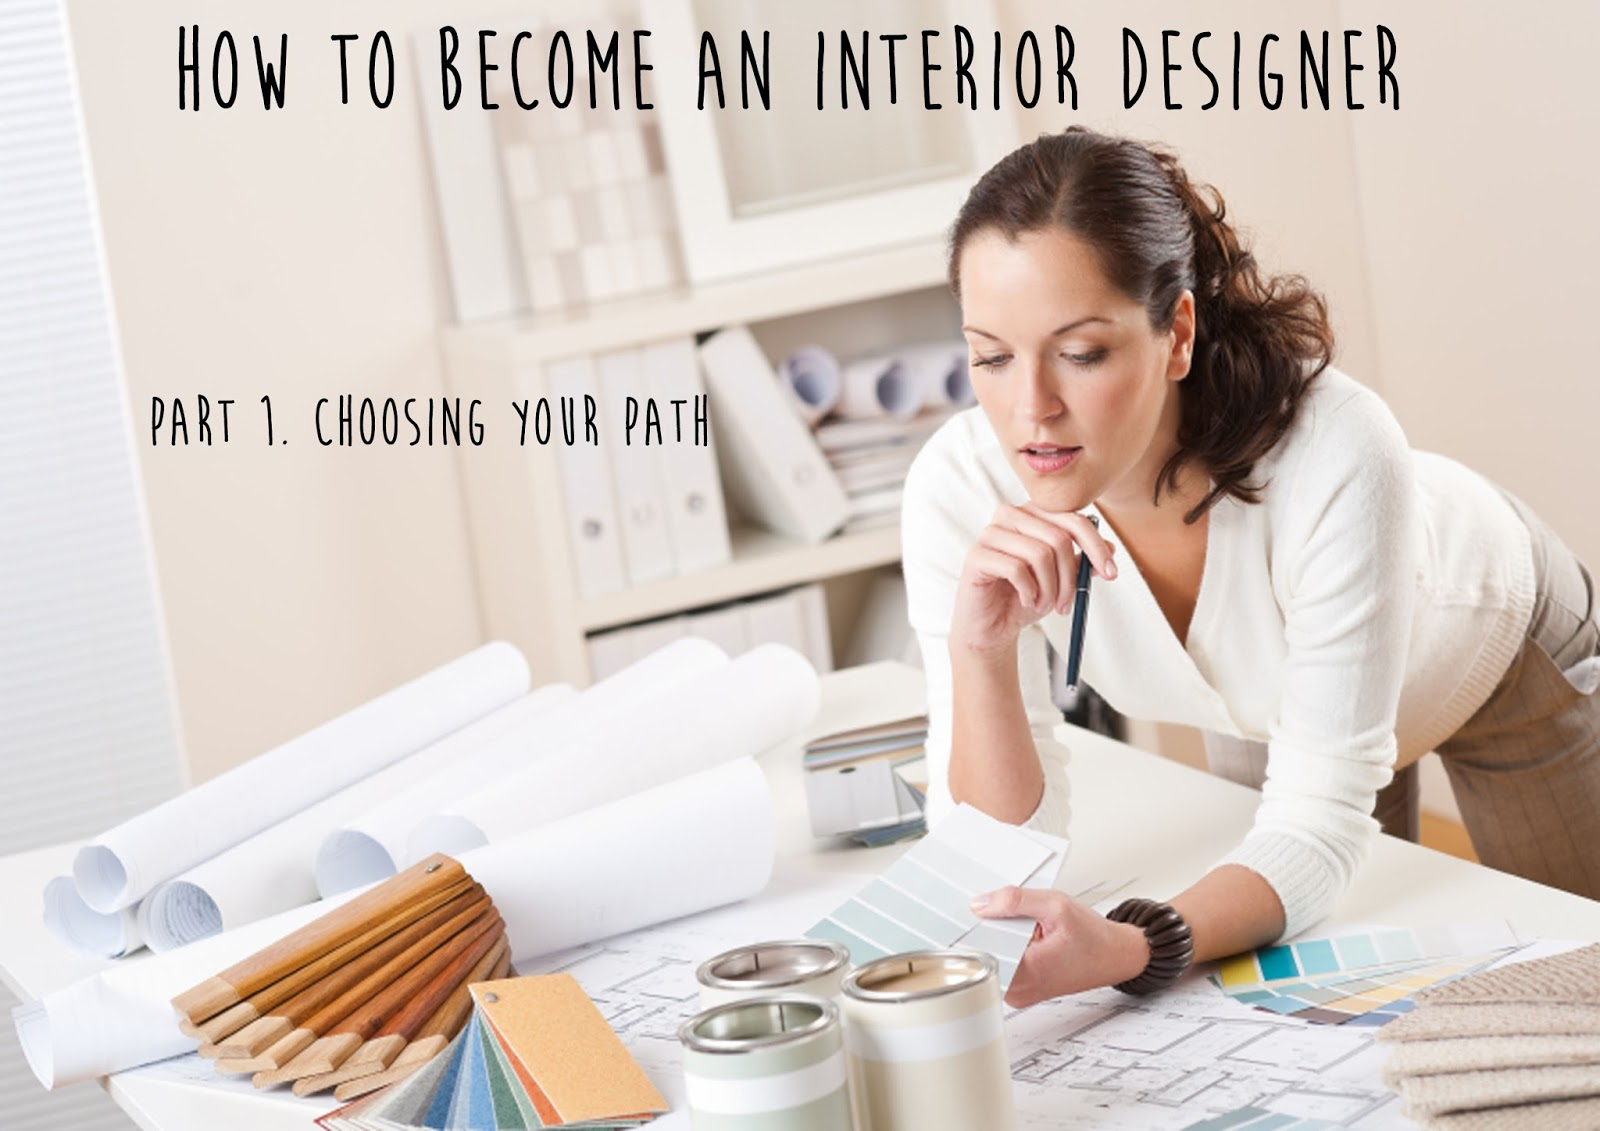 How to become an interior designer part 1 path don 39 t - What does an interior designer do ...